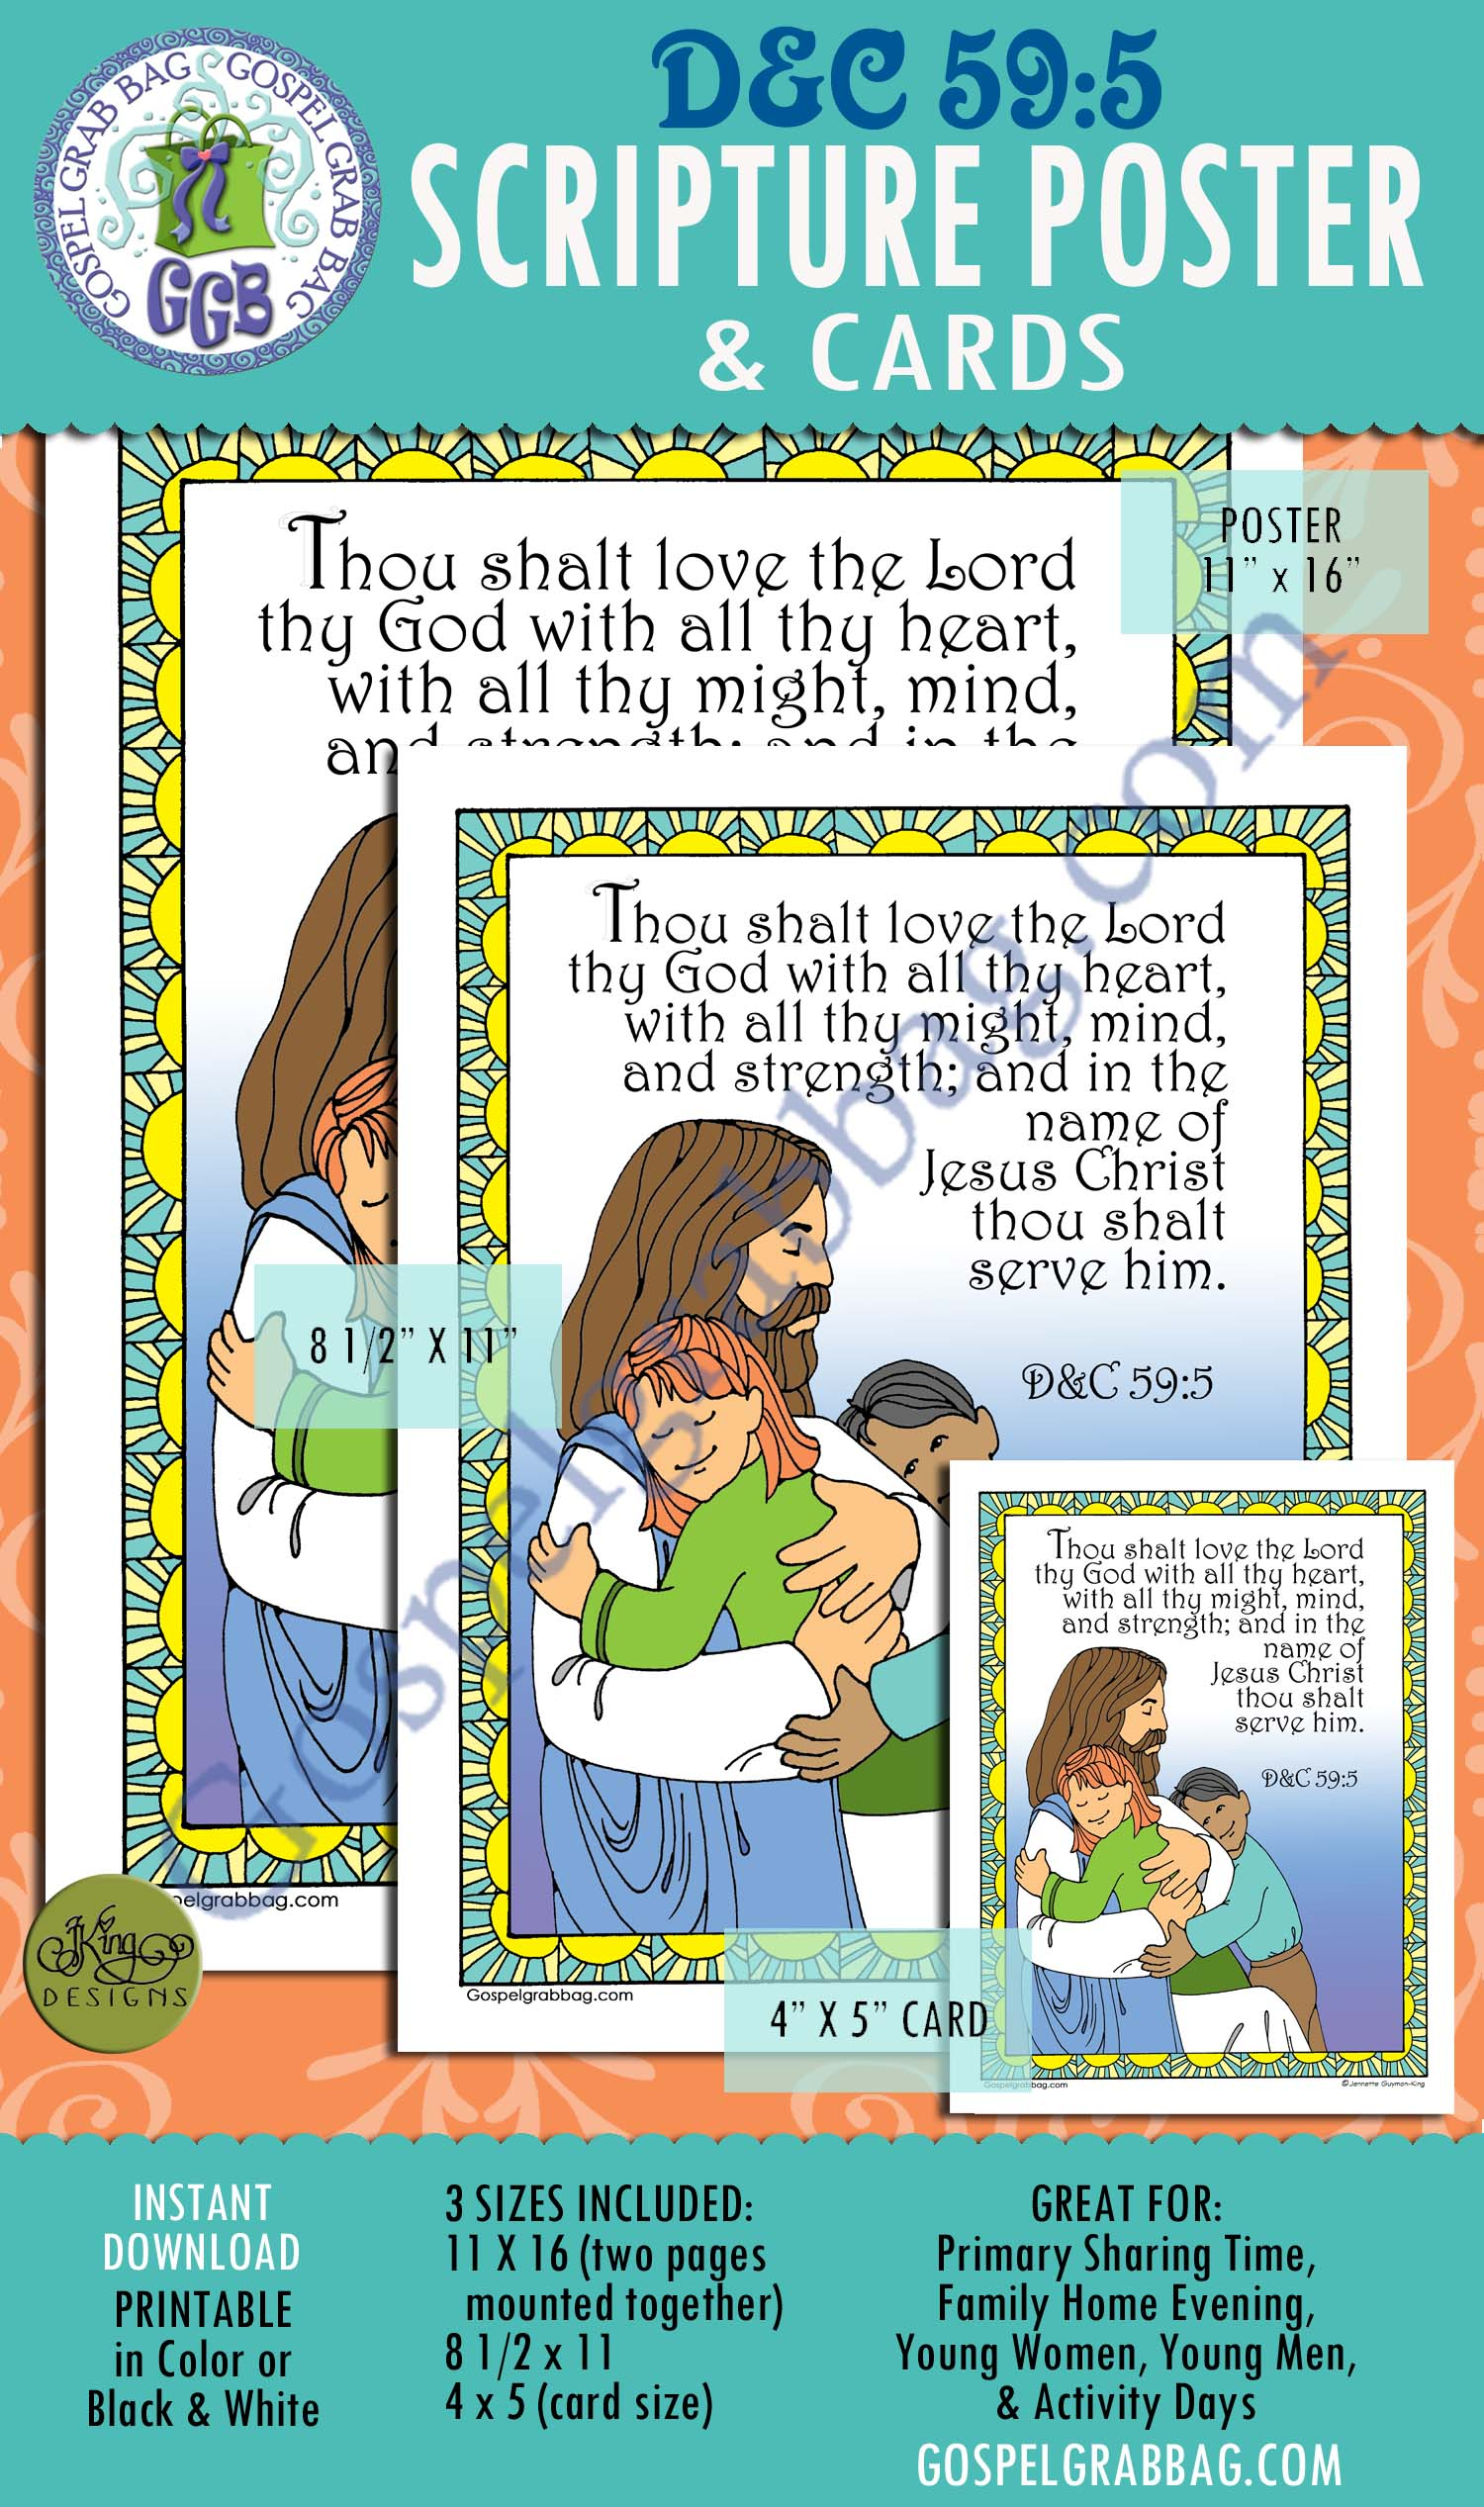 D&C 59:5 SCRIPTURE POSTER & CARDS, Primary Sharing Time, Come Follow Me, Family Home Evening, love and respect God